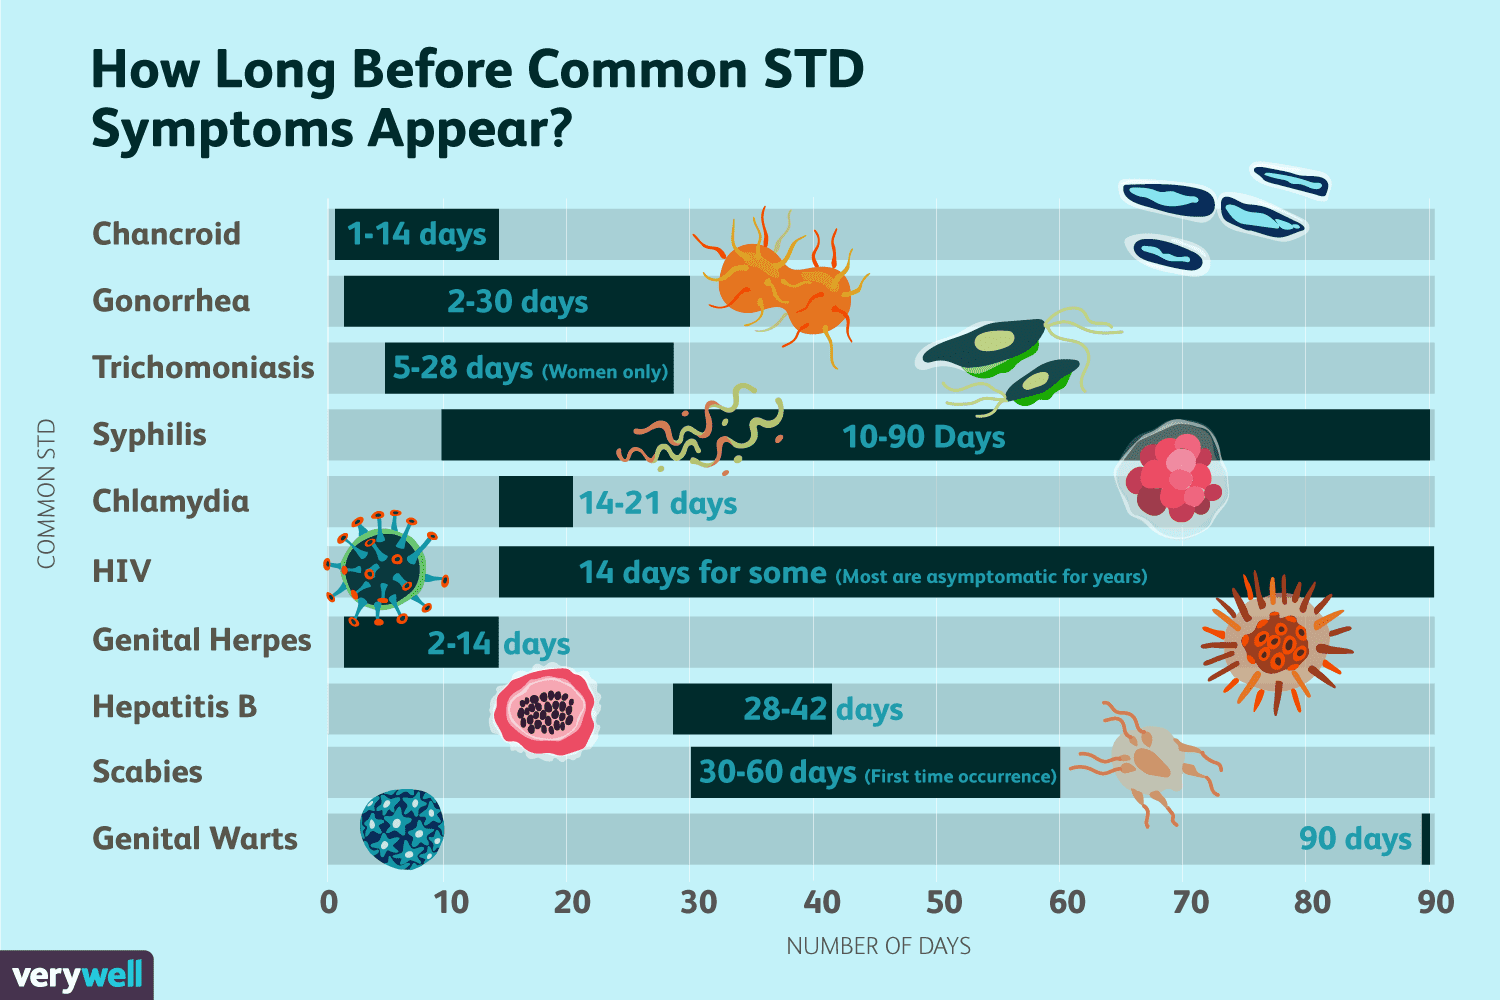 The Incubation Period of Common STDs